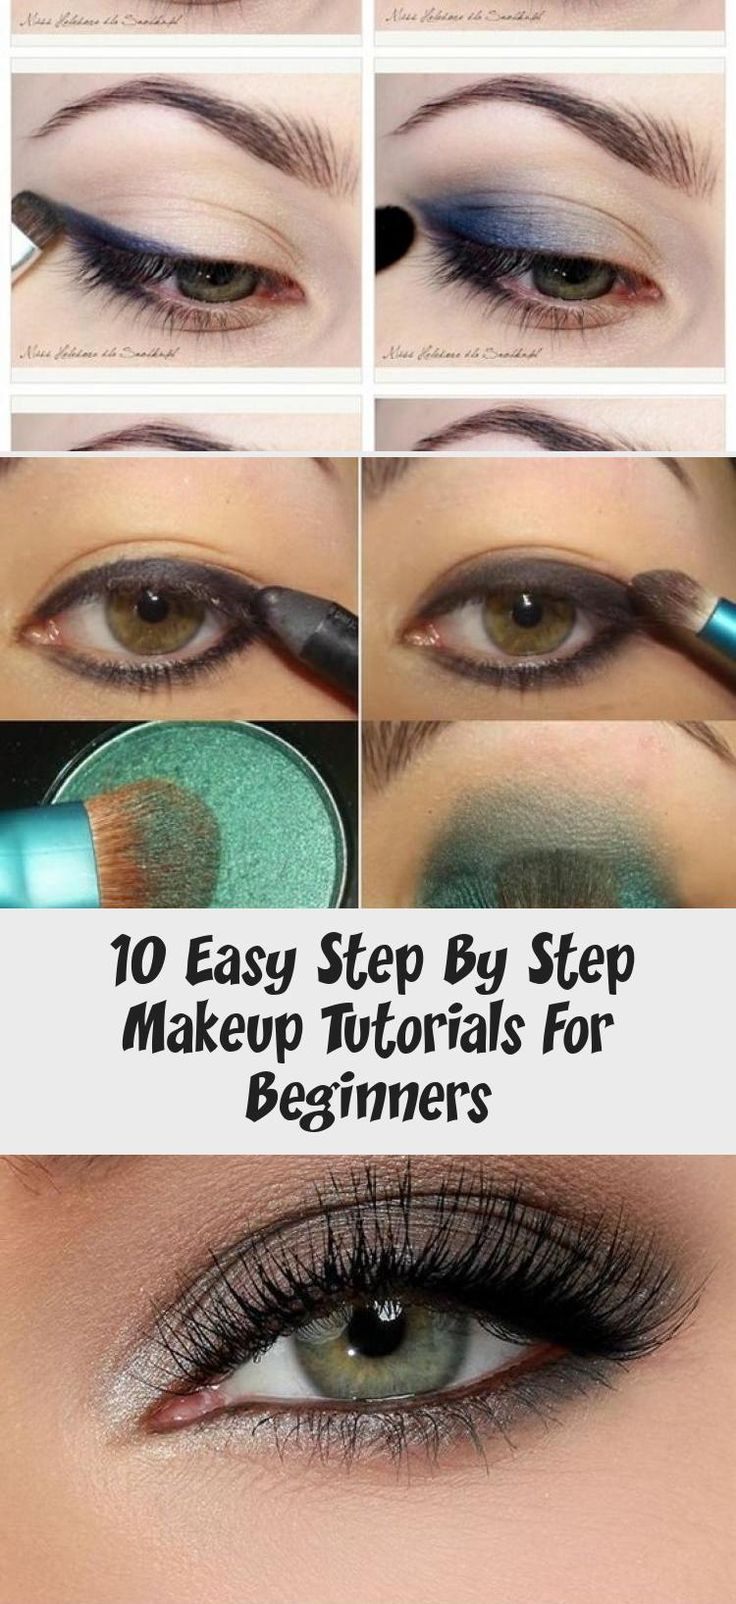 My Blog in 2020 Makeup tutorial for beginners, Makeup